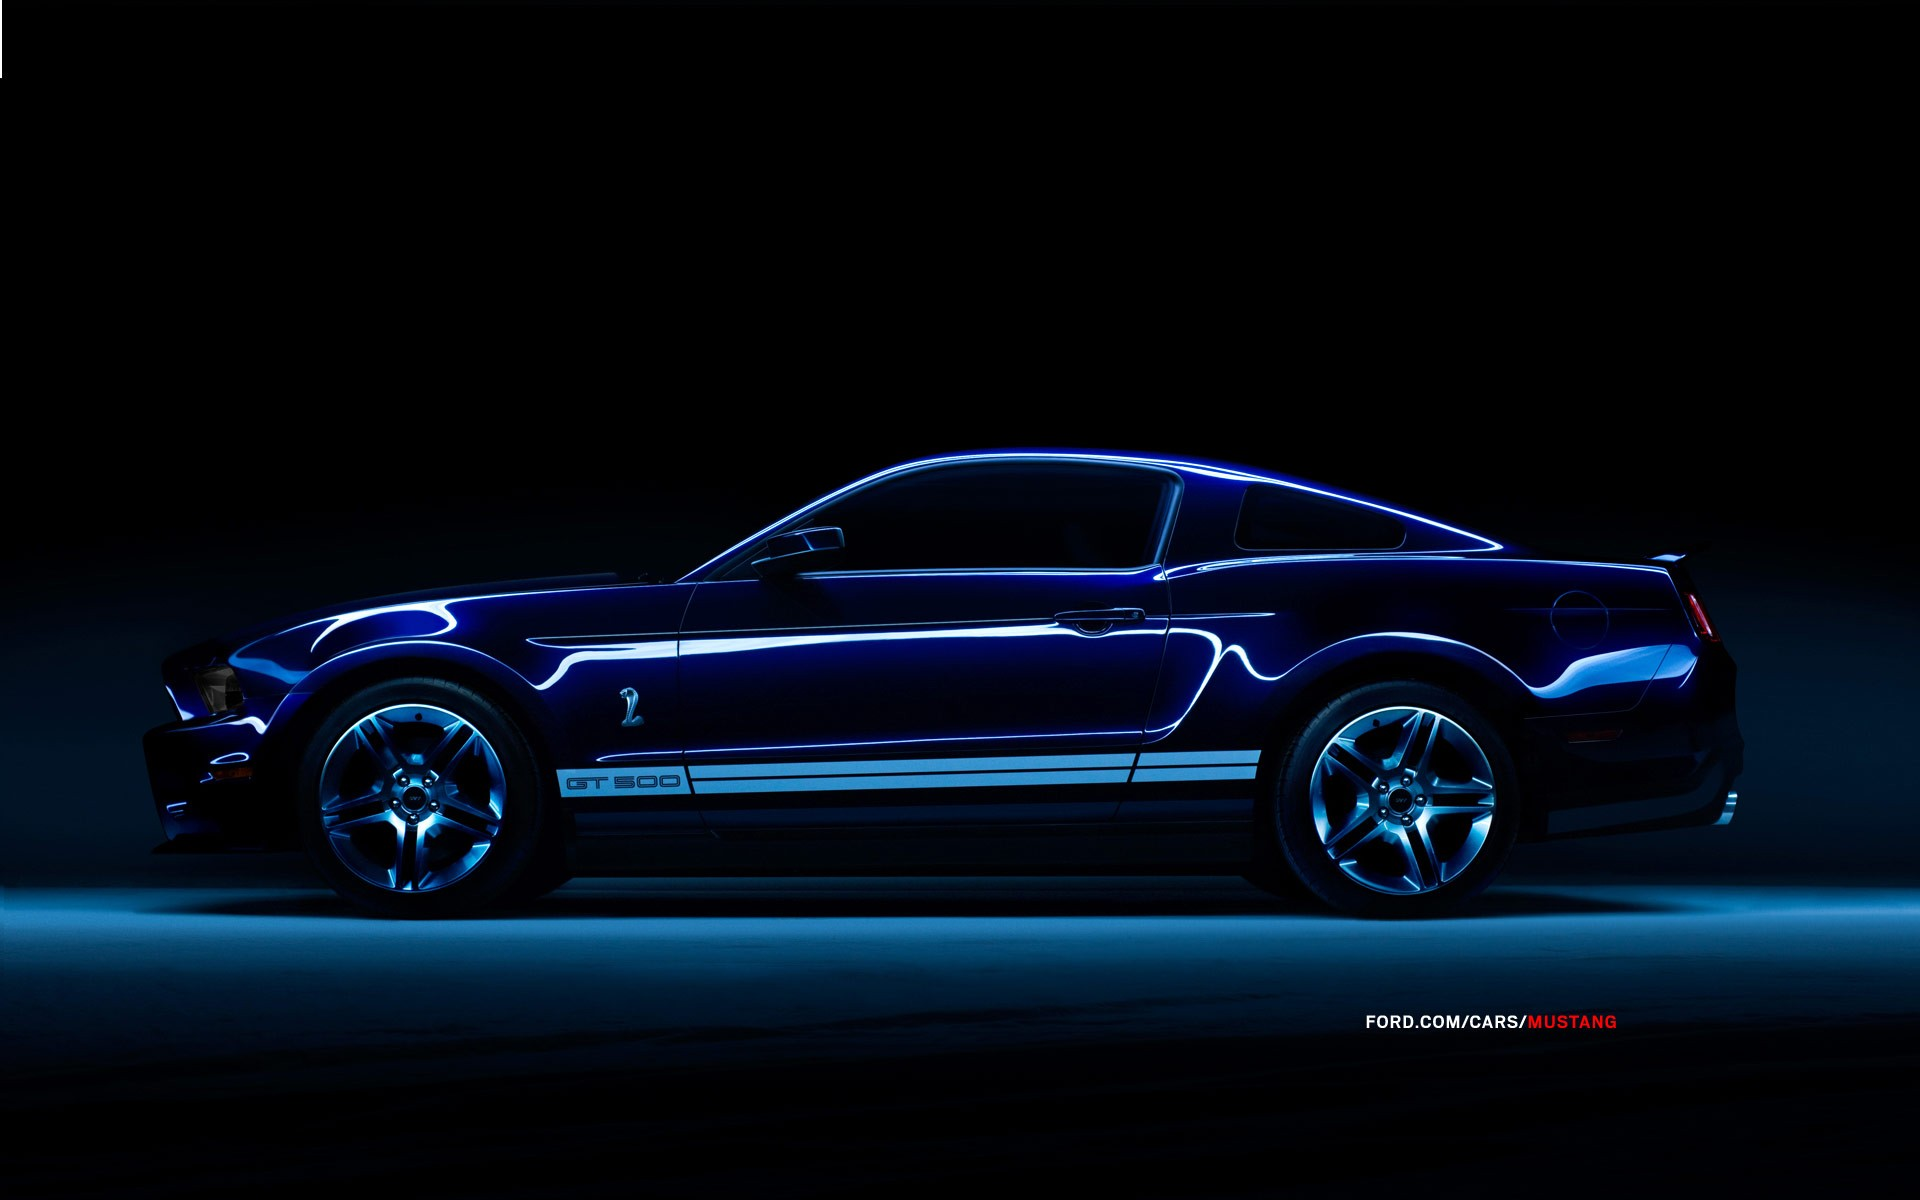 Ford Mustang Shelby GT500 Computer Wallpapers Desktop Backgrounds